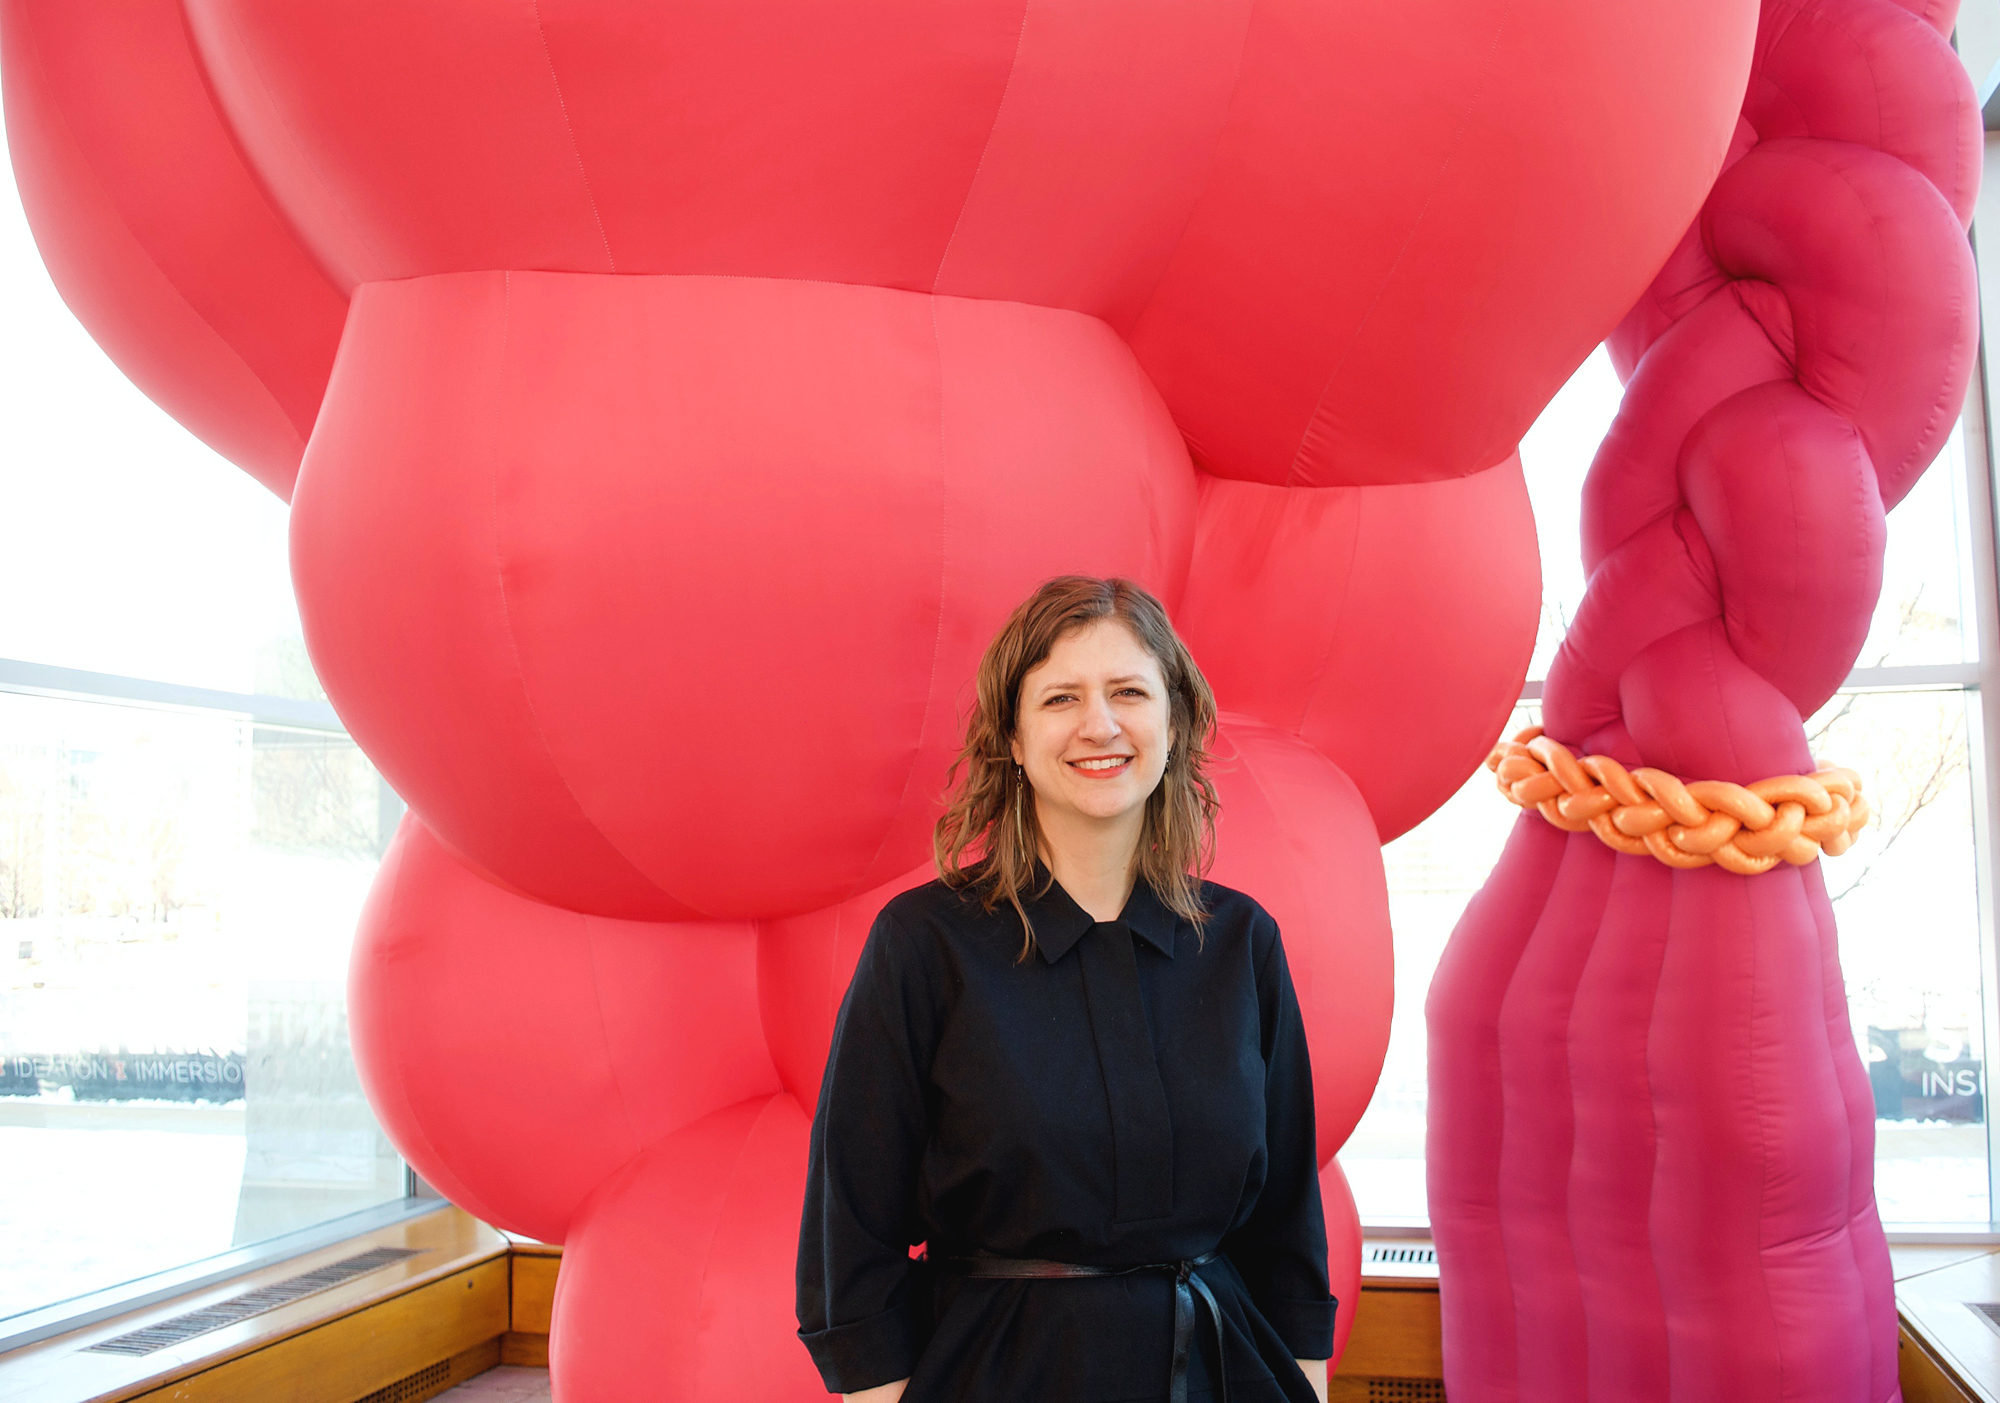 "Featured Image: Amy L. Powell, Curator of Modern and Contemporary Art at Krannert Art Museum stands in front of ""Hive,"" an large inflatable sculpture installed in the museum's Kinkaid Pavillion. The sculpture is floor to ceiling and bright pink. The main body of the sculpture resembles a bunch of grapes, or a multi-breasted female body, and to the side there is fuschia colored a braid with a braided gold band around the end of the braid. Powell stands in the center of the image, looking into the camera and smiling. She is wearing a black dress, and her hands are in her pockets. Photo by Jessica Hammie."